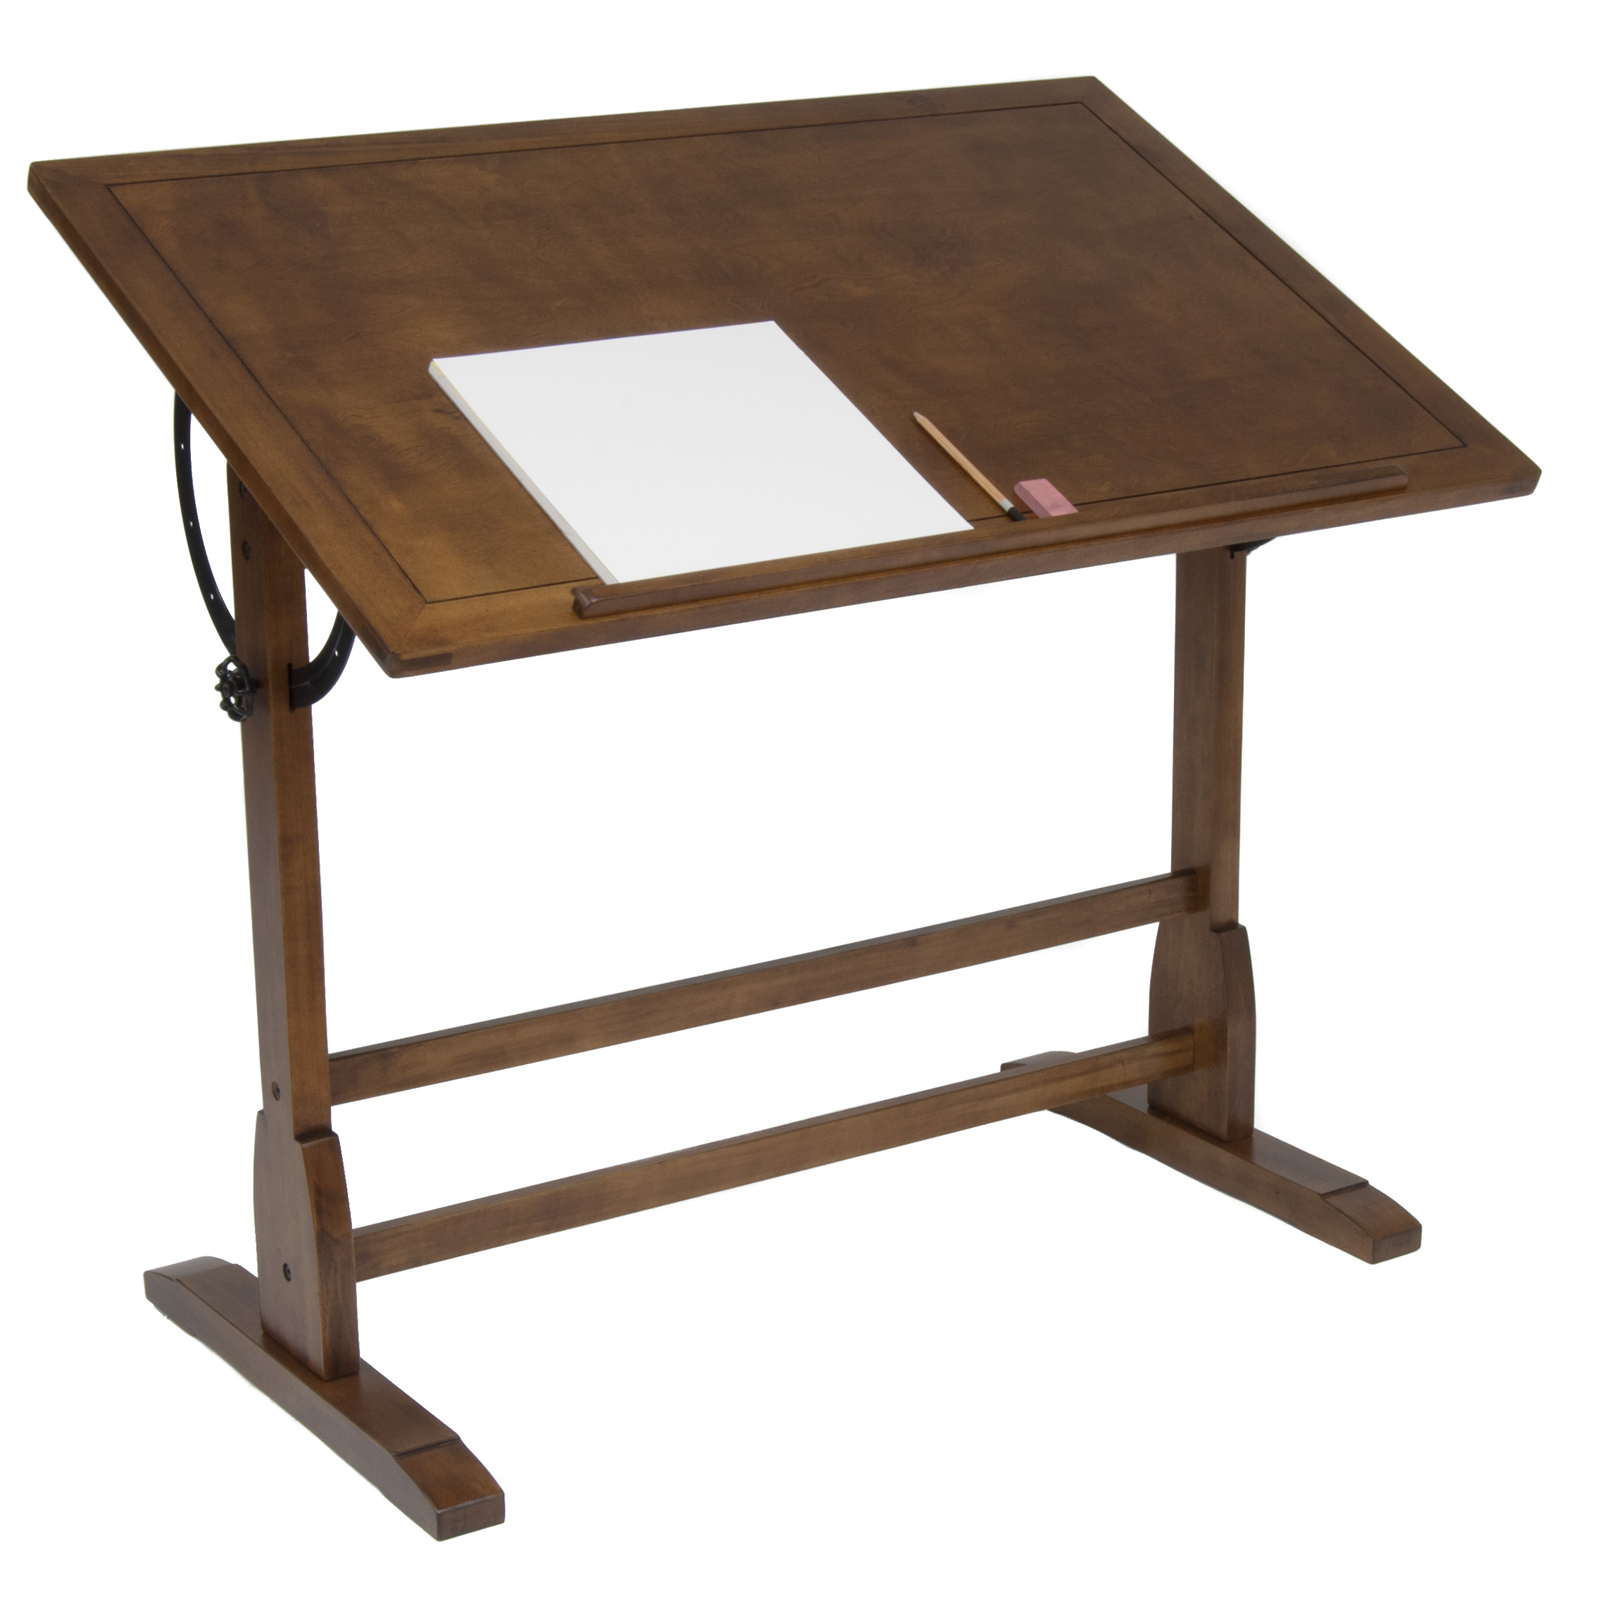 42 inch vintage drafting table by studio designs - Drawing Desk